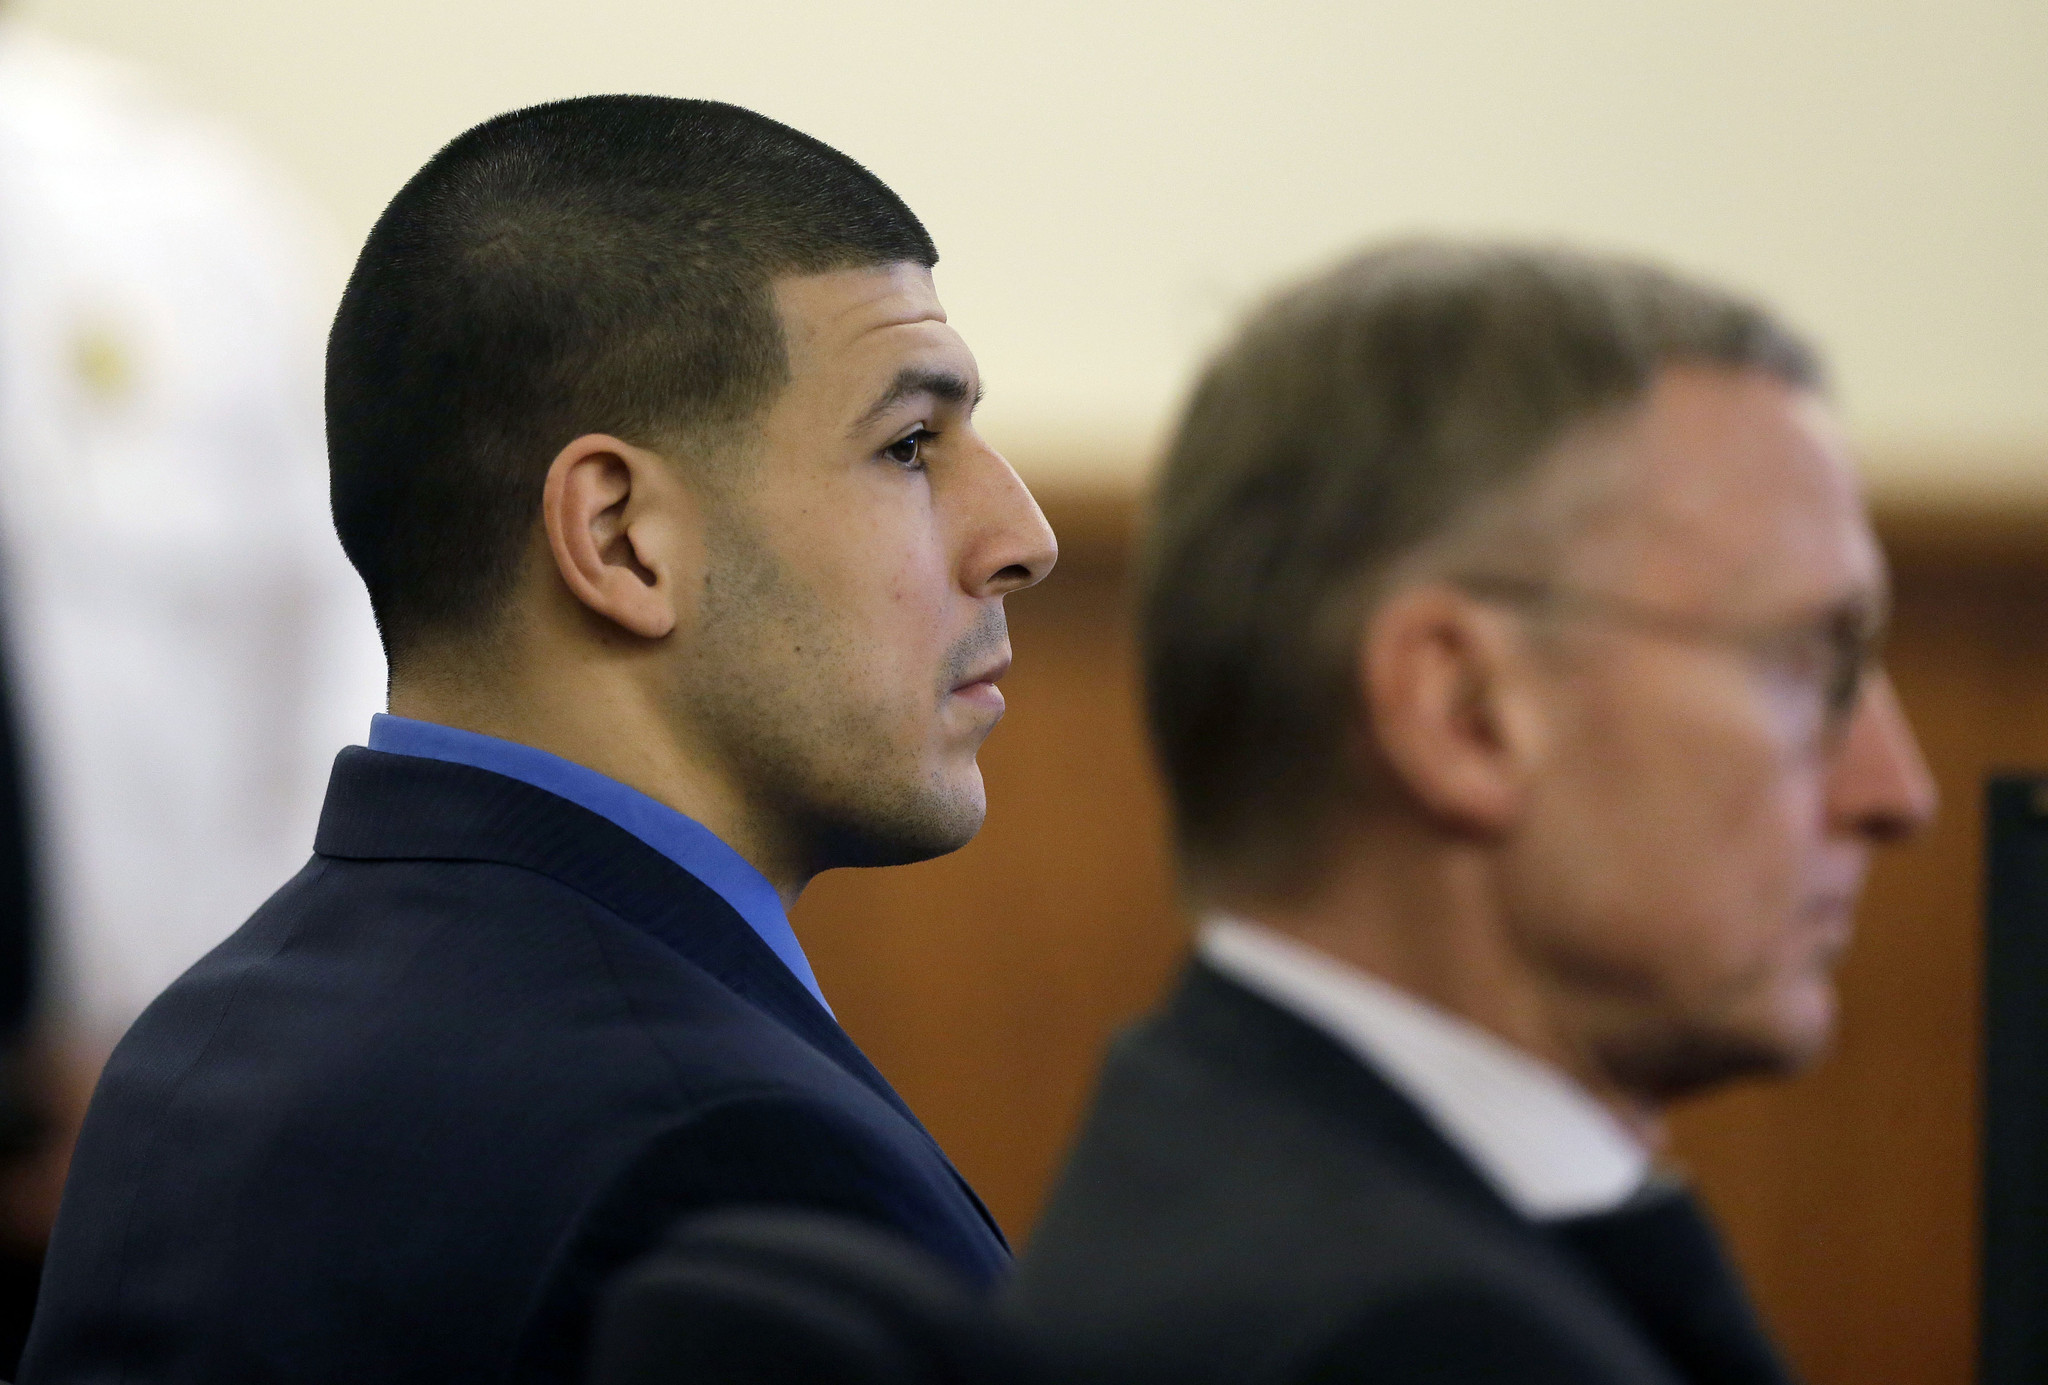 aaron hernandez murder trial Jury acquitted aaron hernandez of murder charges friday share via e-mail a jury on friday cleared aaron hernandez of committing a double murder in 2012 he has a prosthetic right eye and wore glasses during the trial, and occasionally glanced at hernandez and shook his head.